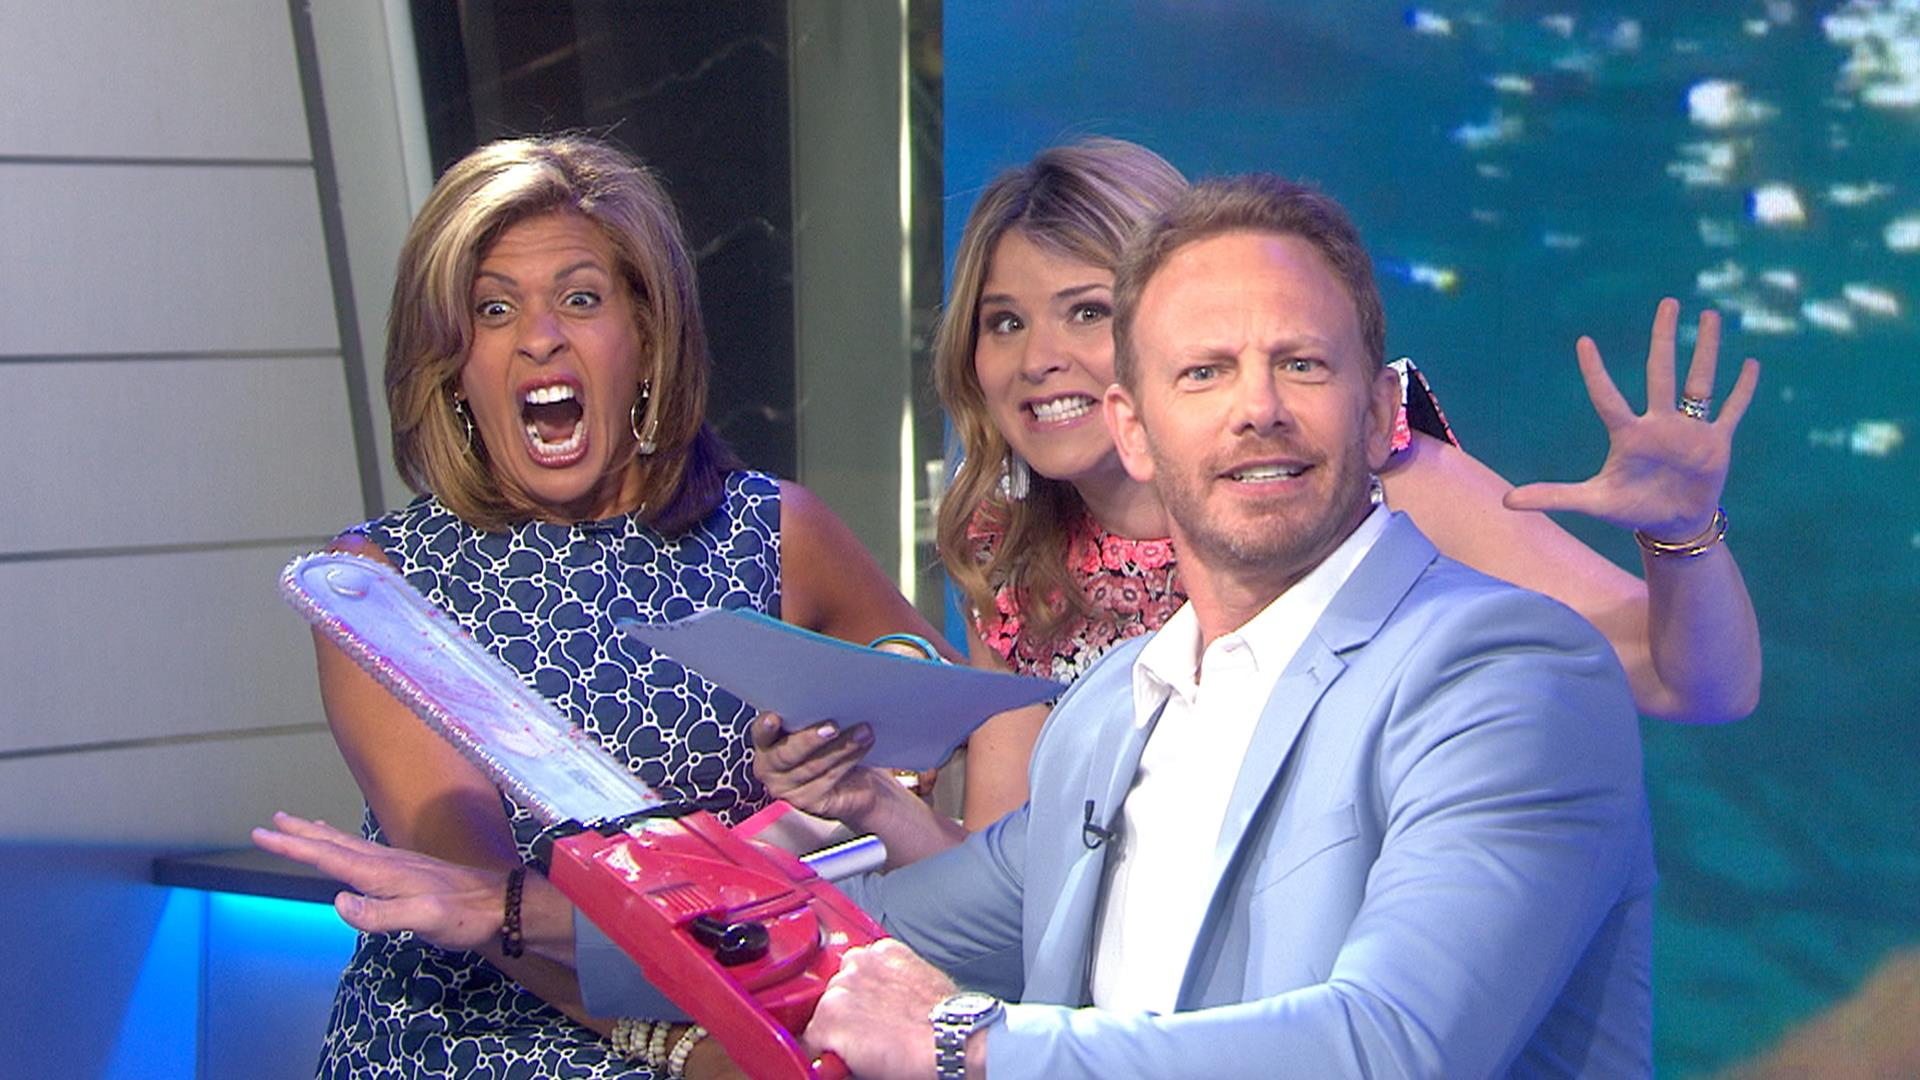 Sharks beware: Ian Ziering is back with his Sharknado chainsaw